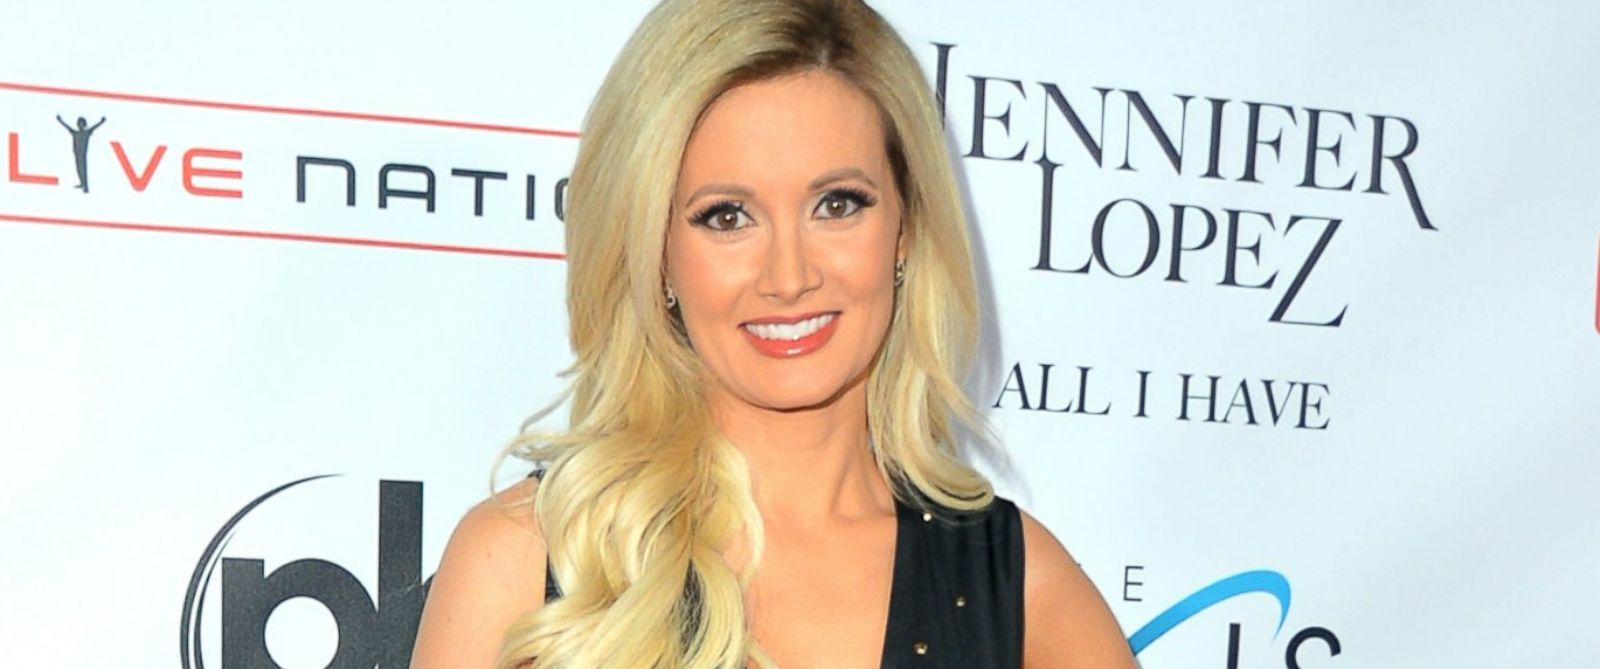 """PHOTO: Holly Madison attends the launch of Jennifer Lopezs residency """"JENNIFER LOPEZ: ALL I HAVE"""" at Planet Hollywood Resort & Casino, Jan. 20, 2016, in Las Vegas."""